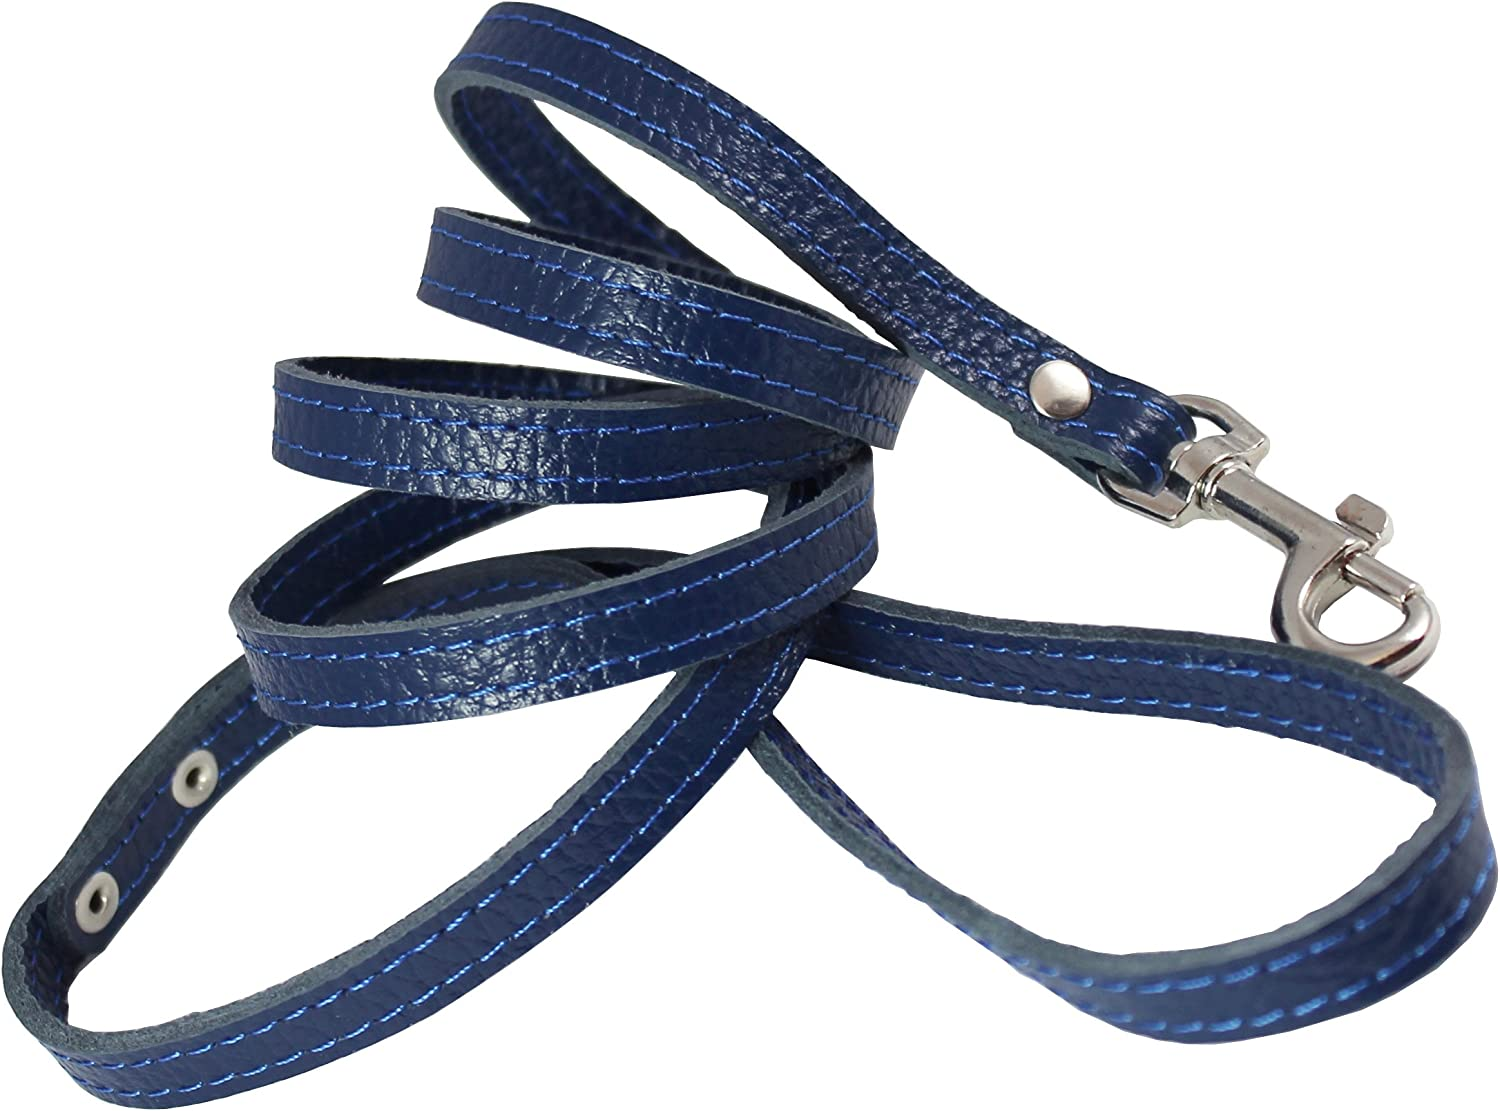 4foot Genuine Leather 1 2  Wide Dog Leash for Small Breeds (bluee)